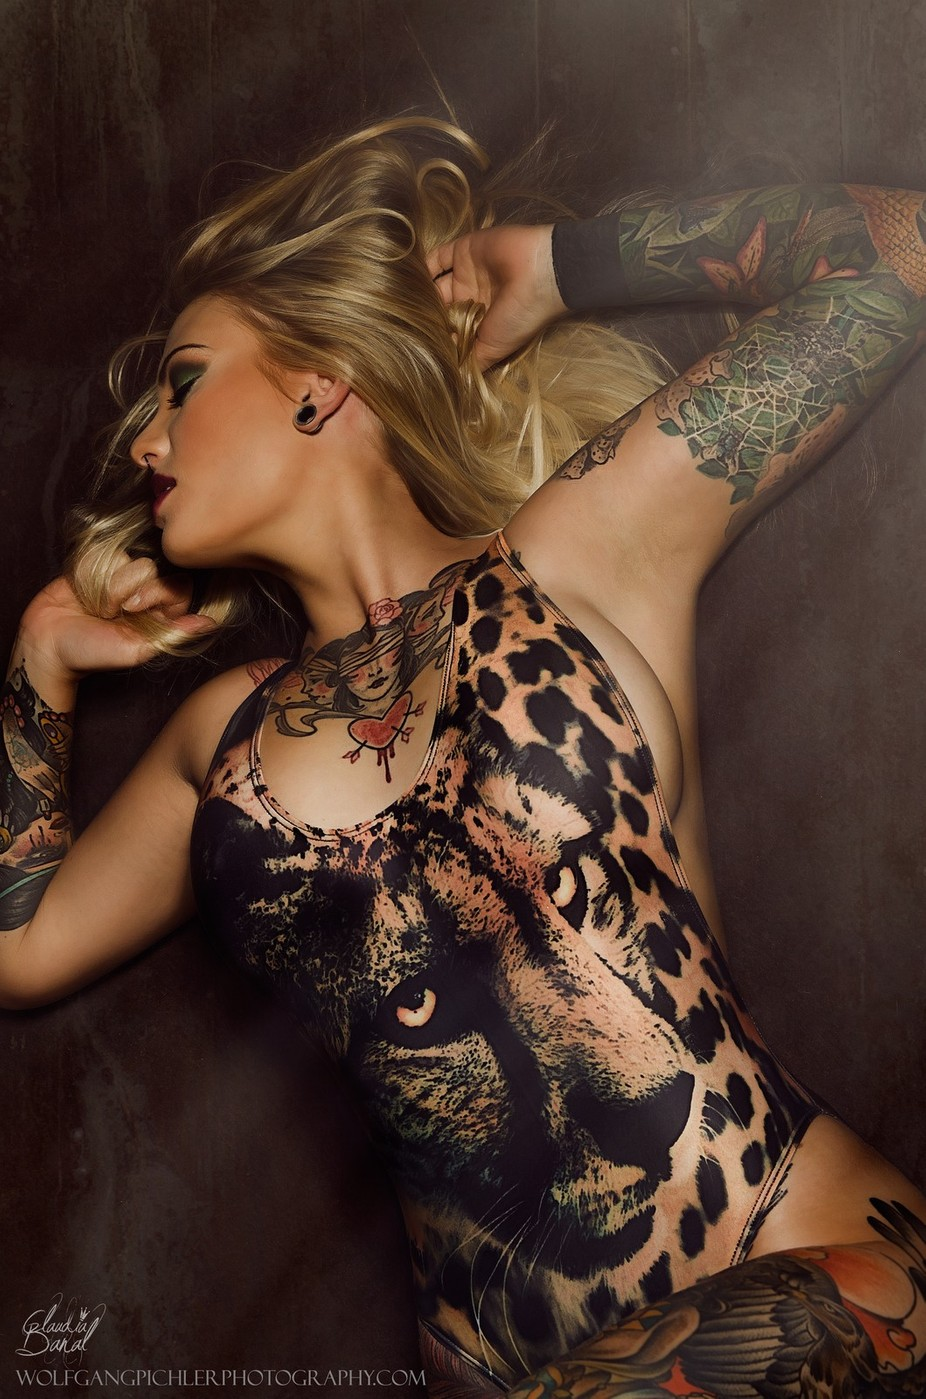 Claudia by WolfgangPichler - 500 Tattoos Photo Contest